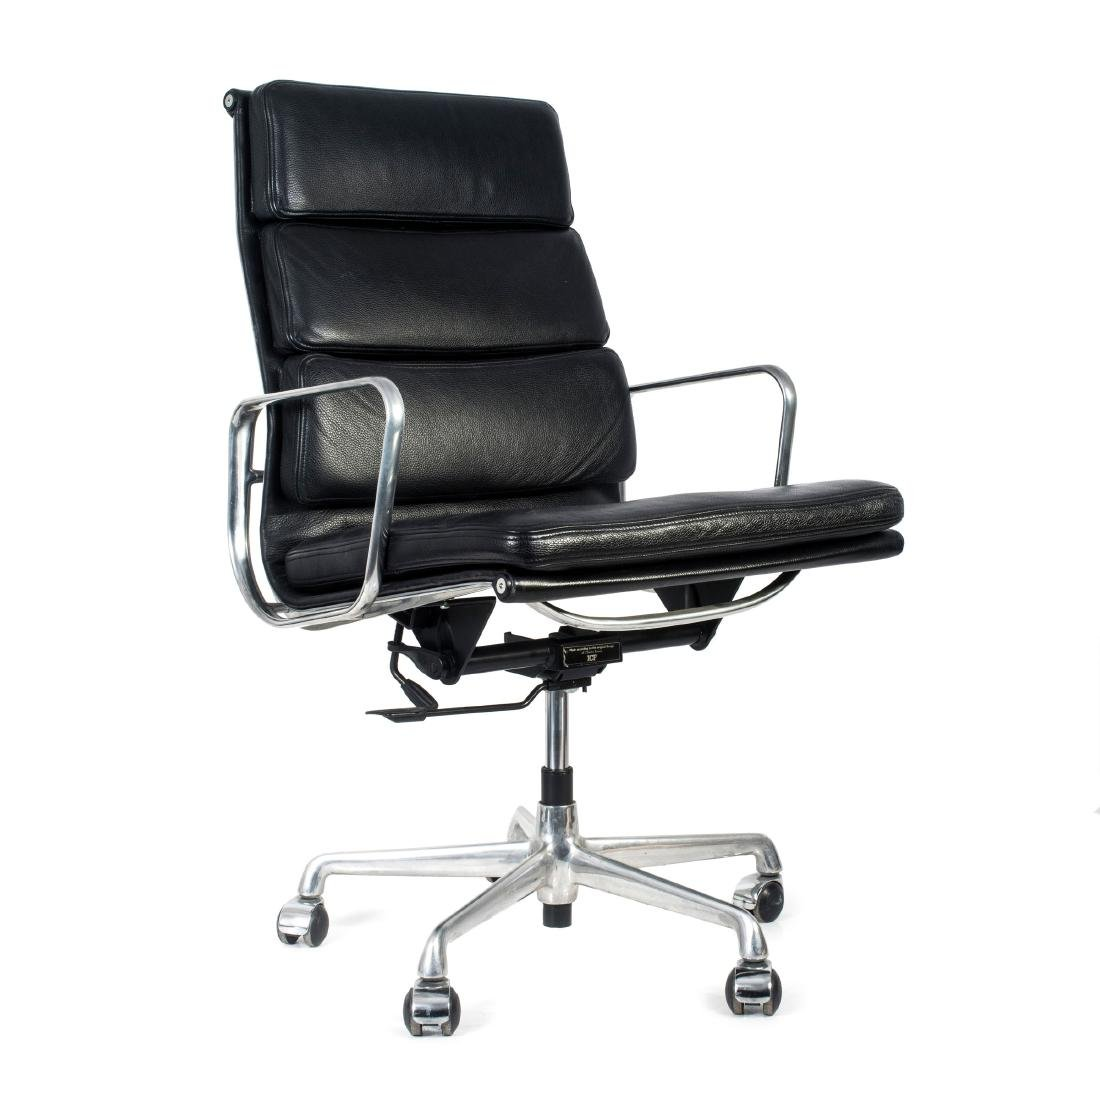 'Soft Pad Group Swivel chair with side arms', 1969